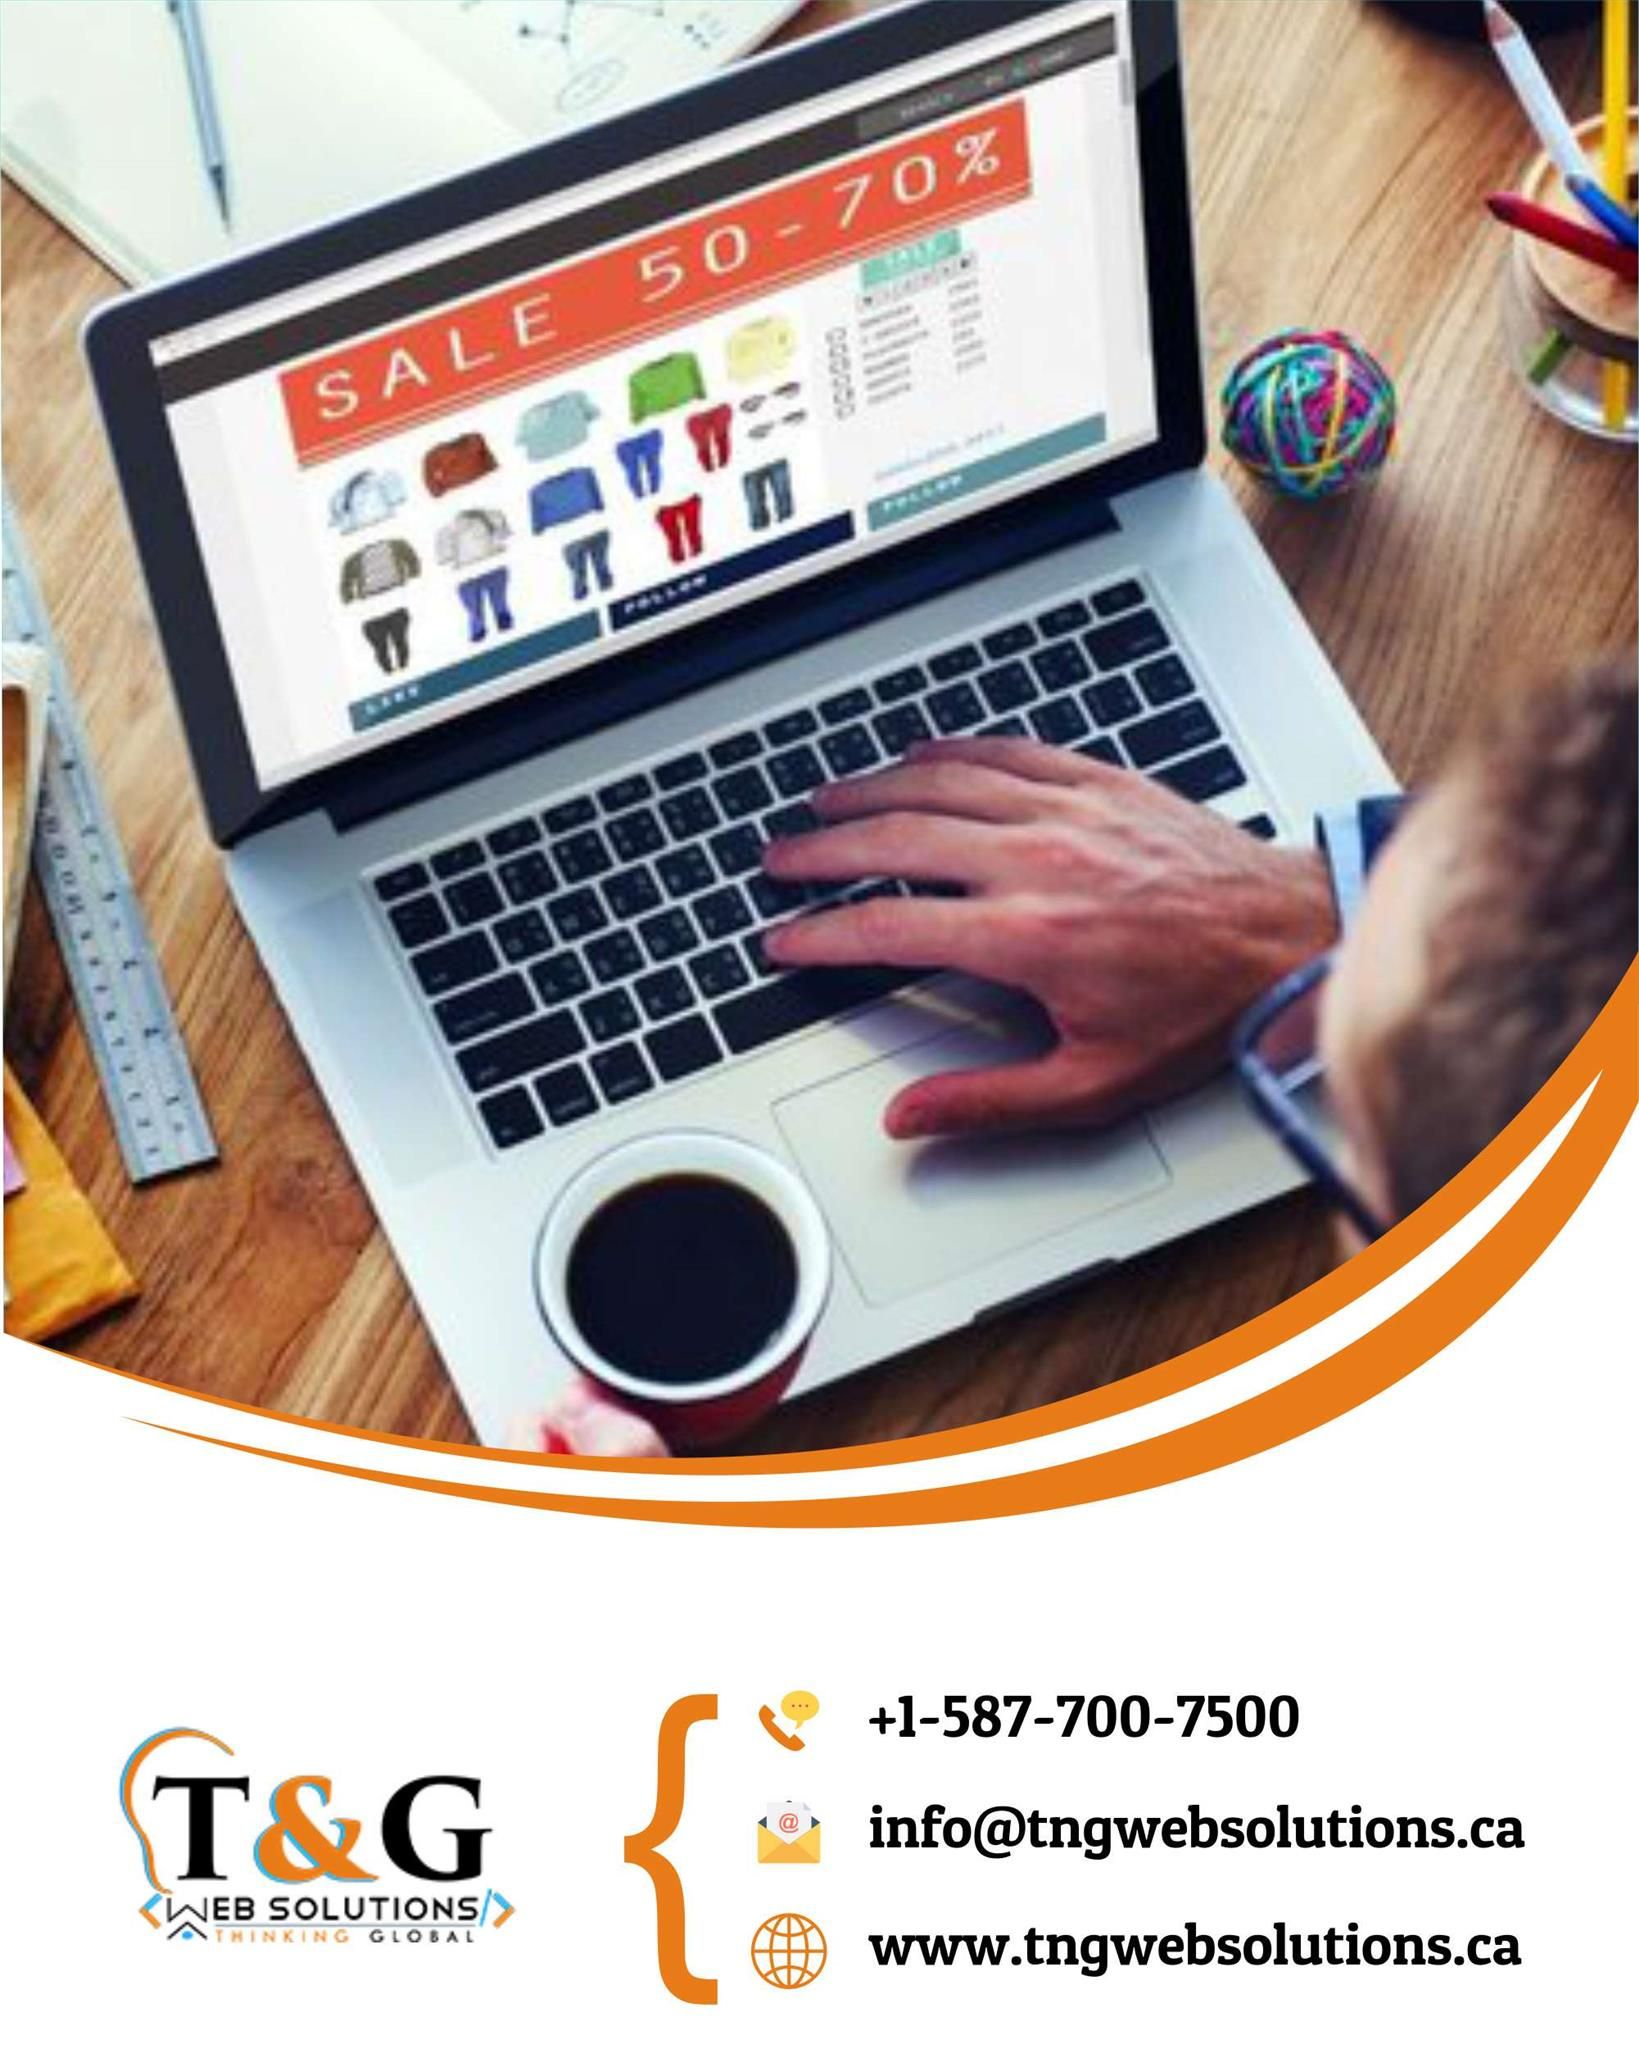 T&G WEB SOLUTIONS SALES & MARKETING I have never worked